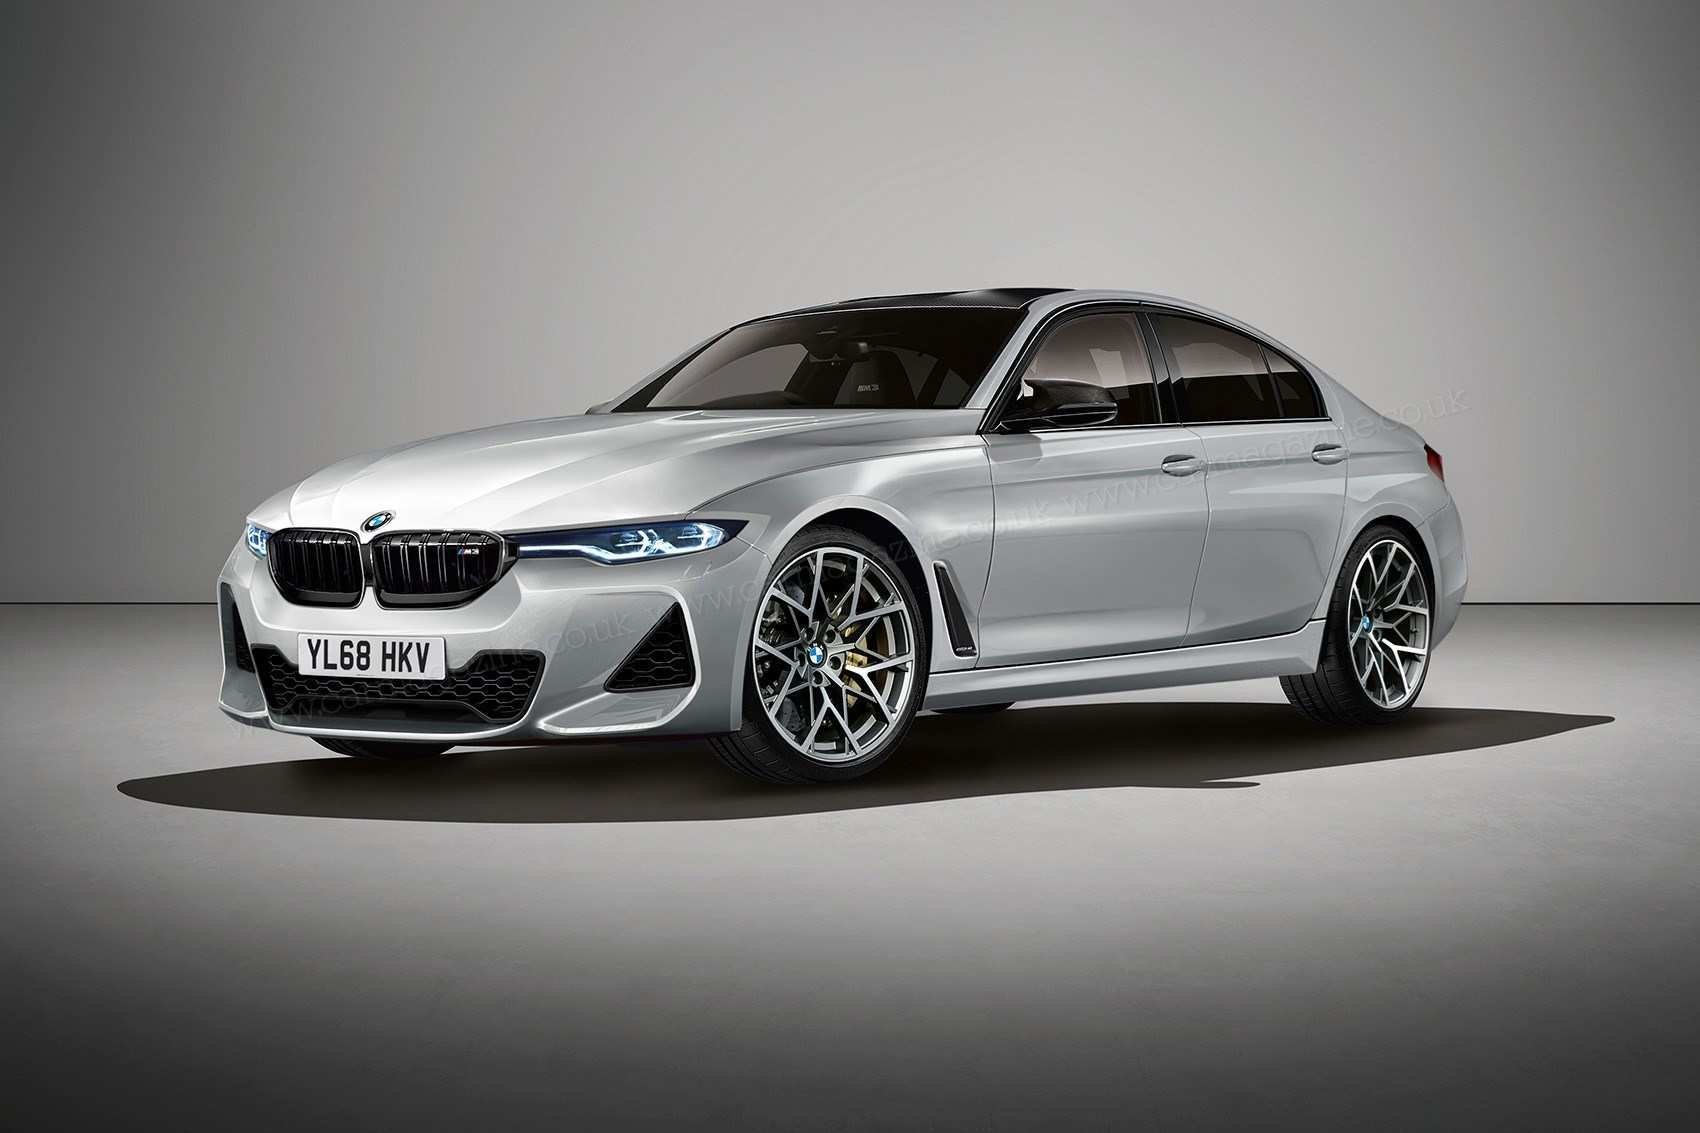 36 Gallery of 2020 BMW M3 New Review with 2020 BMW M3